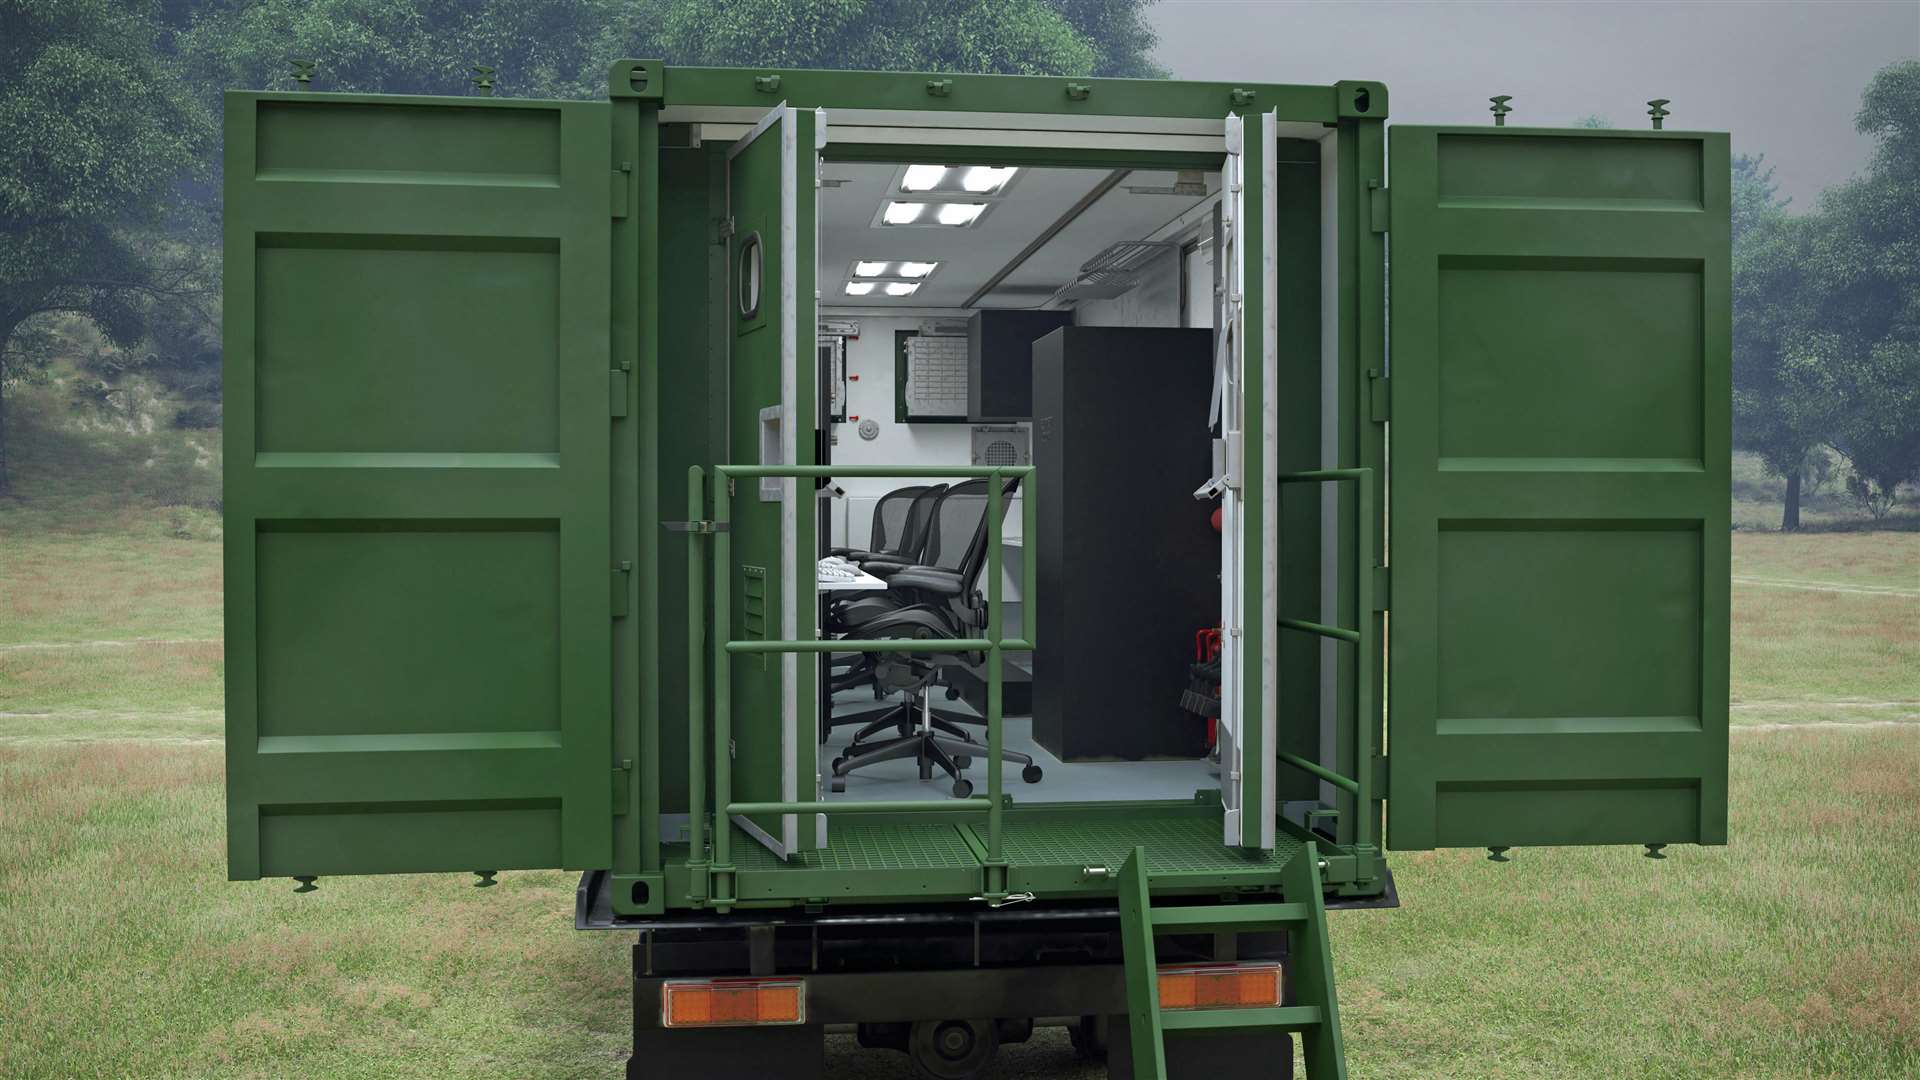 CAD images of the Deployable Office and Stores facilities for the Danish Armed Forces to be provided by Marshall Aerospace and Defence Group following the award of a framework agreement, the second contract in as many weeks (7484351)